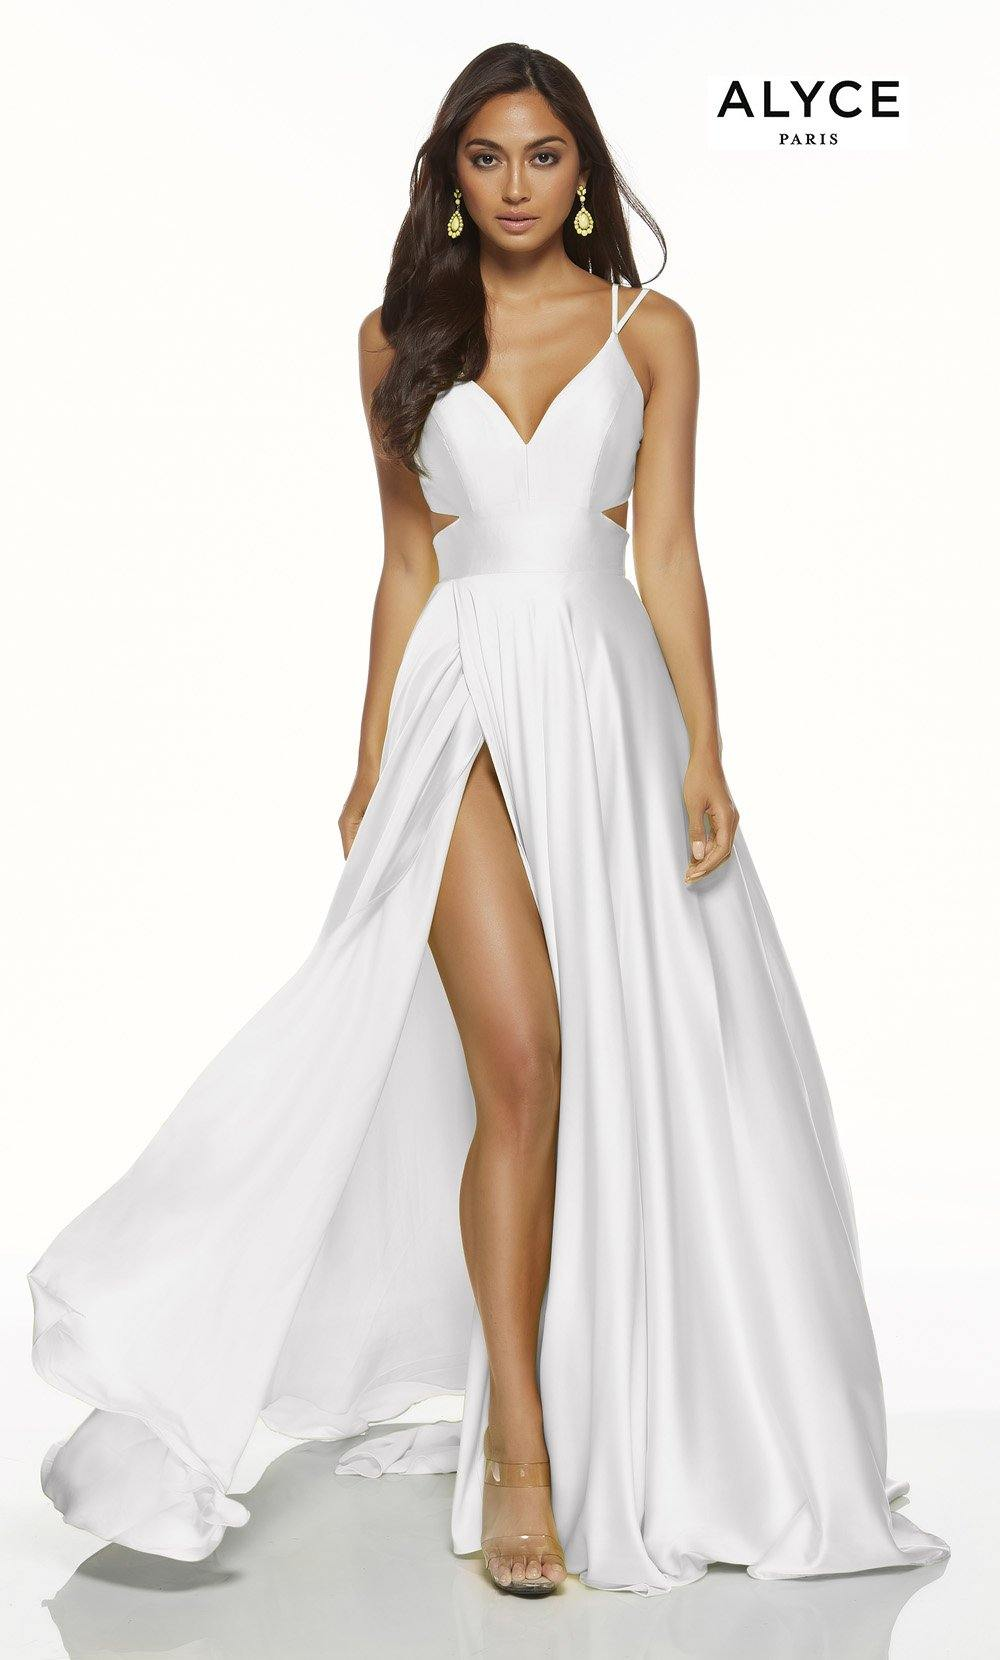 Diamond White flowy satin chiffon beach wedding dress with a V neck, side cutouts, and front slit